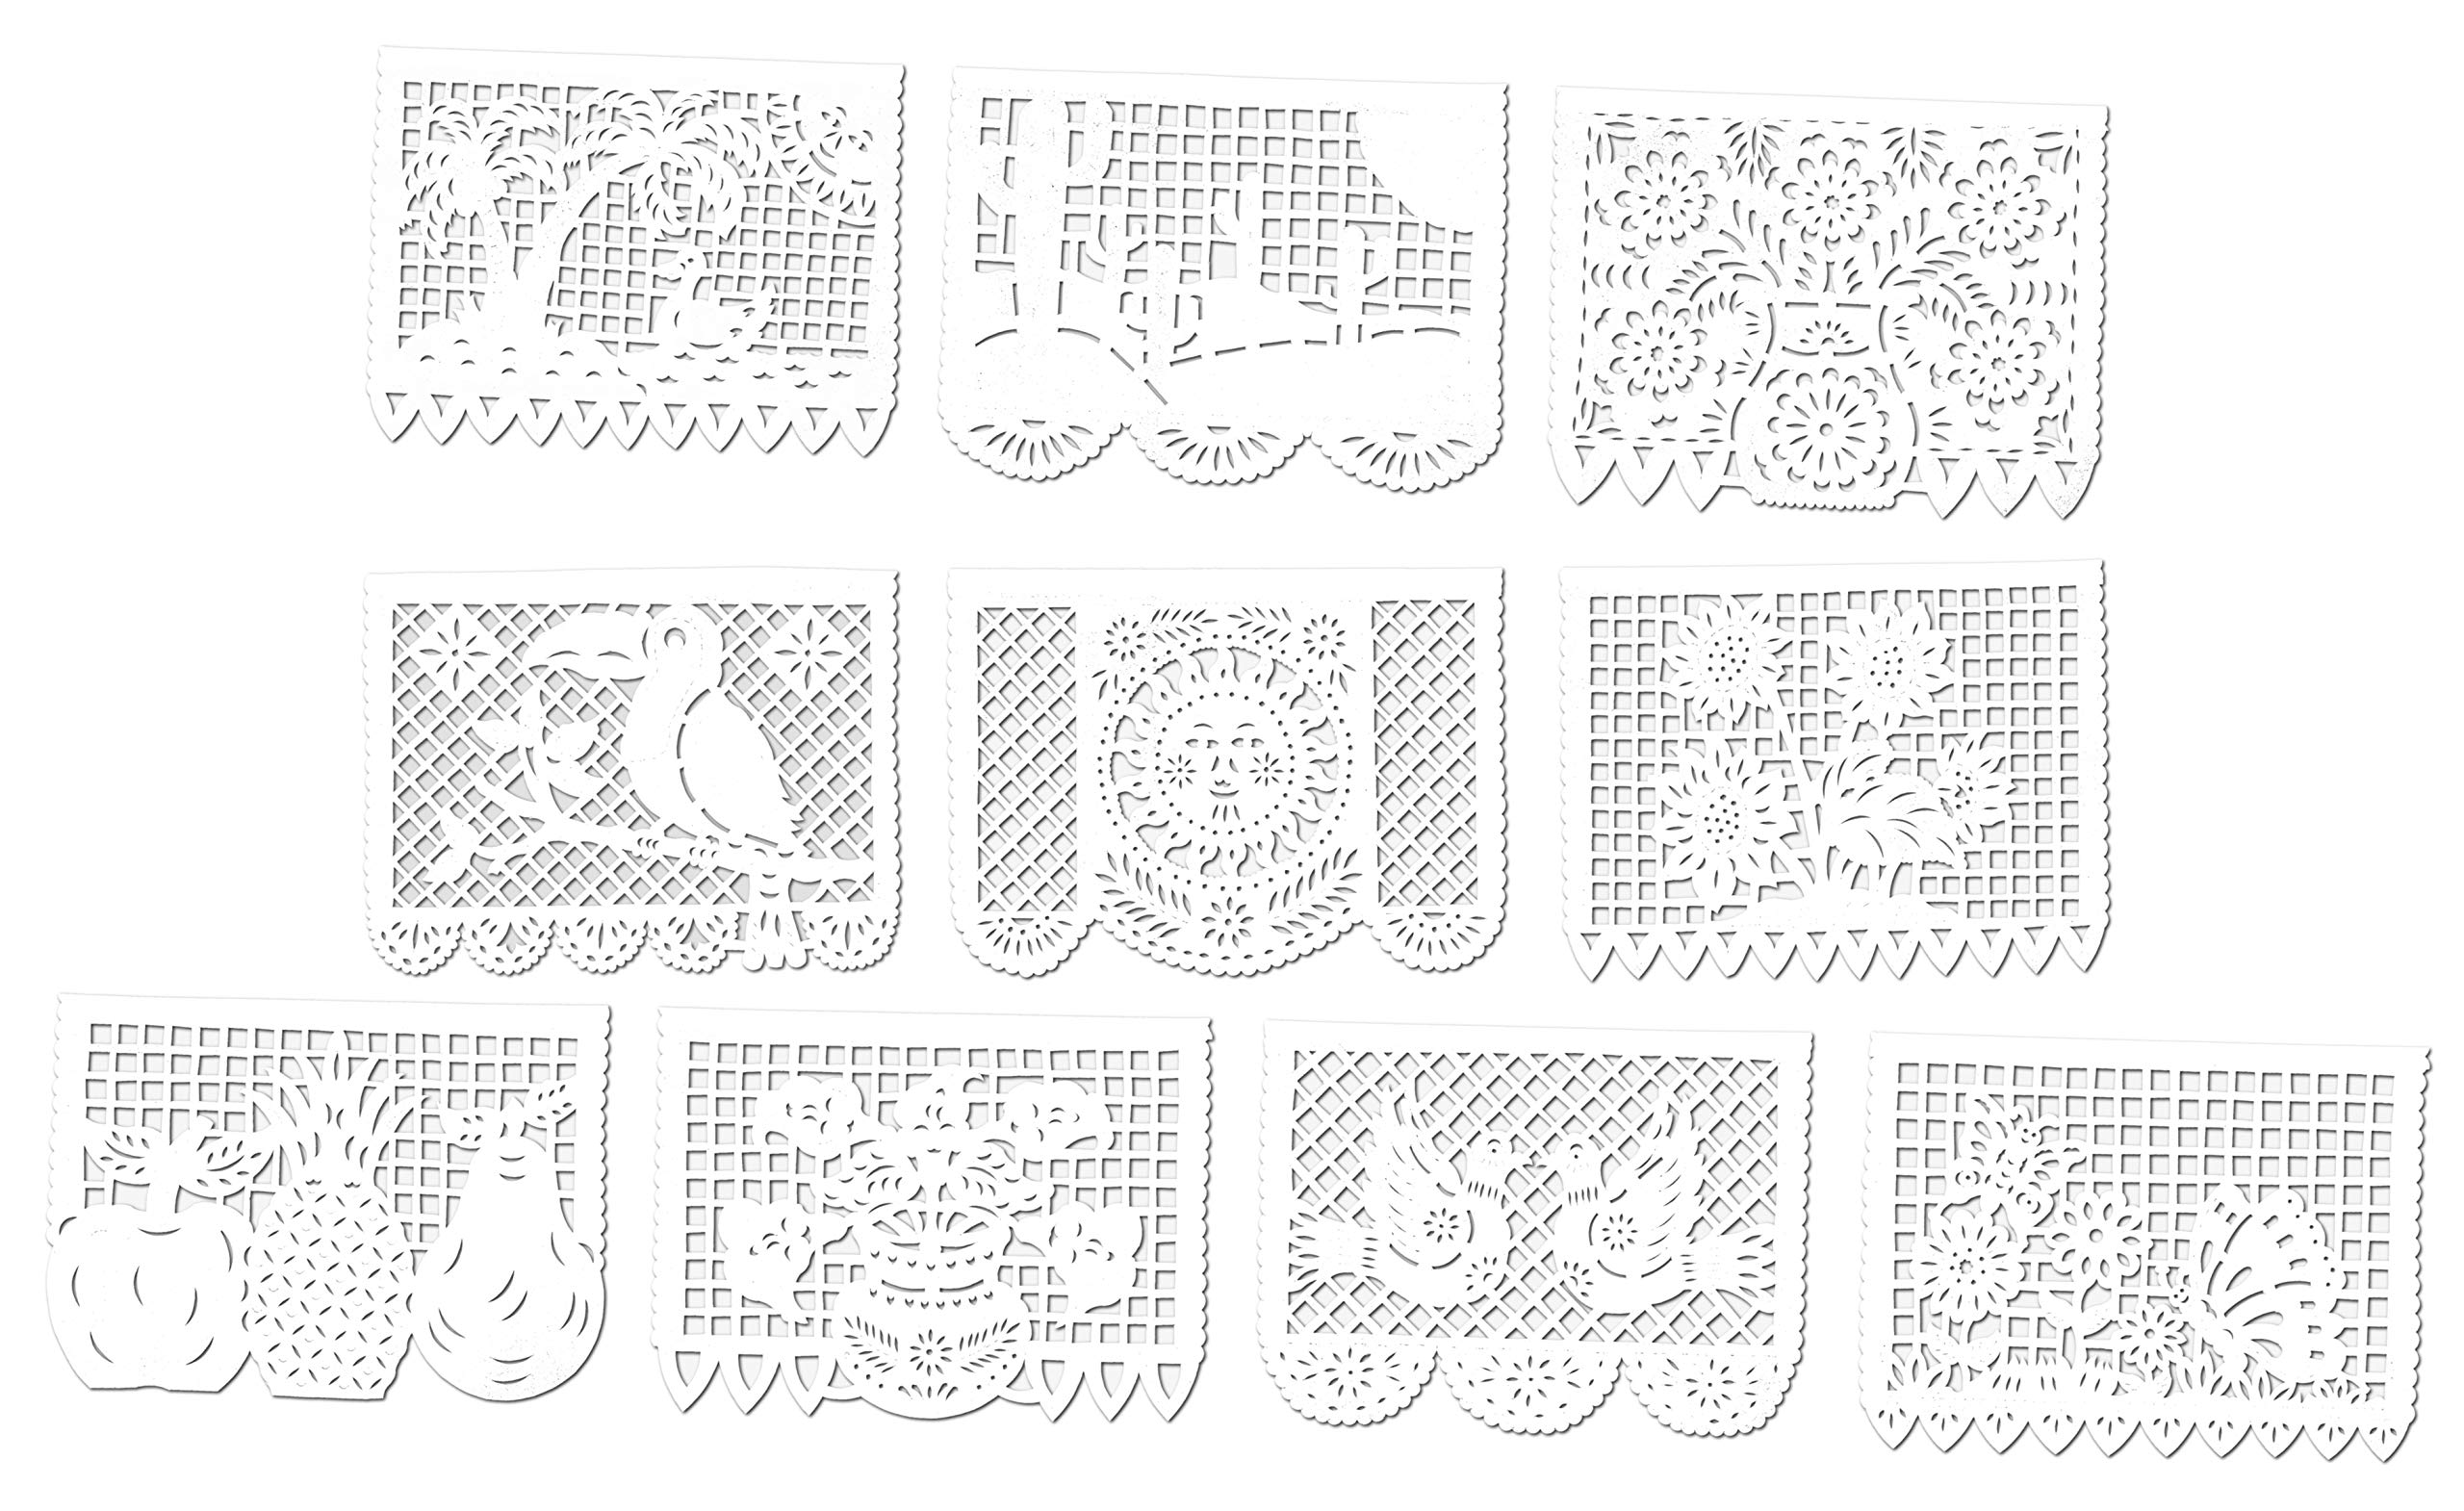 Paper Full of Wishes Large Party Pack Tissue Papel Picado Banner - Primavera Blanca - 30 Tissue Panels - Each Banner 50 ft Long Hanging - 3 Pack Banner Set - Designs and Color as Pictured (3pk)